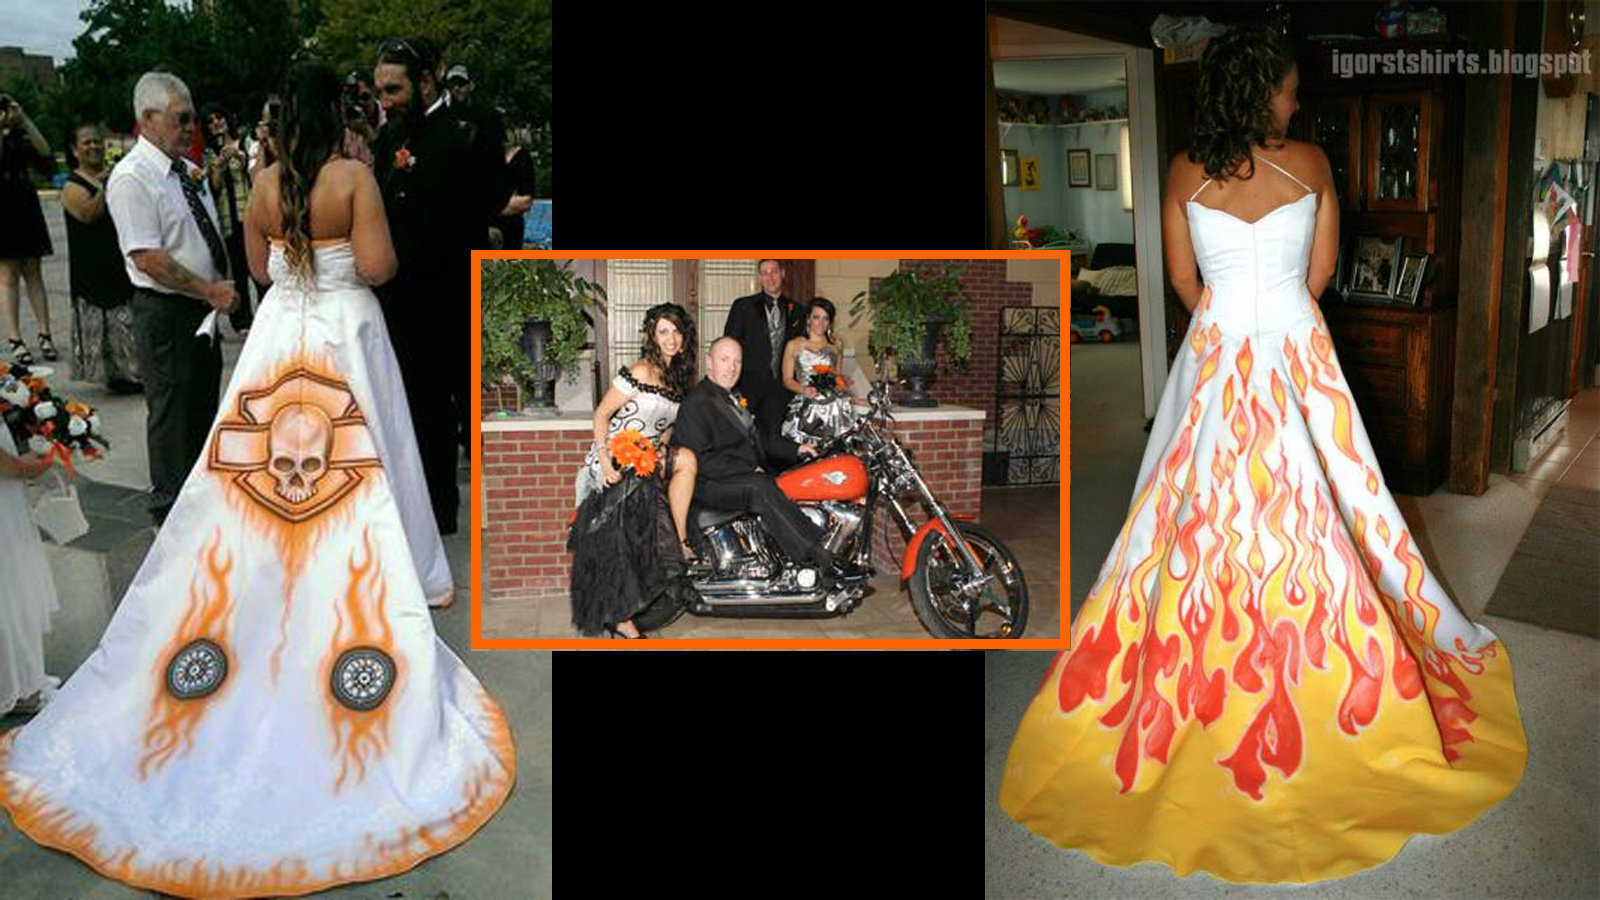 11 Things You Need for a Harley-Davidson Themed Wedding - Hdforums